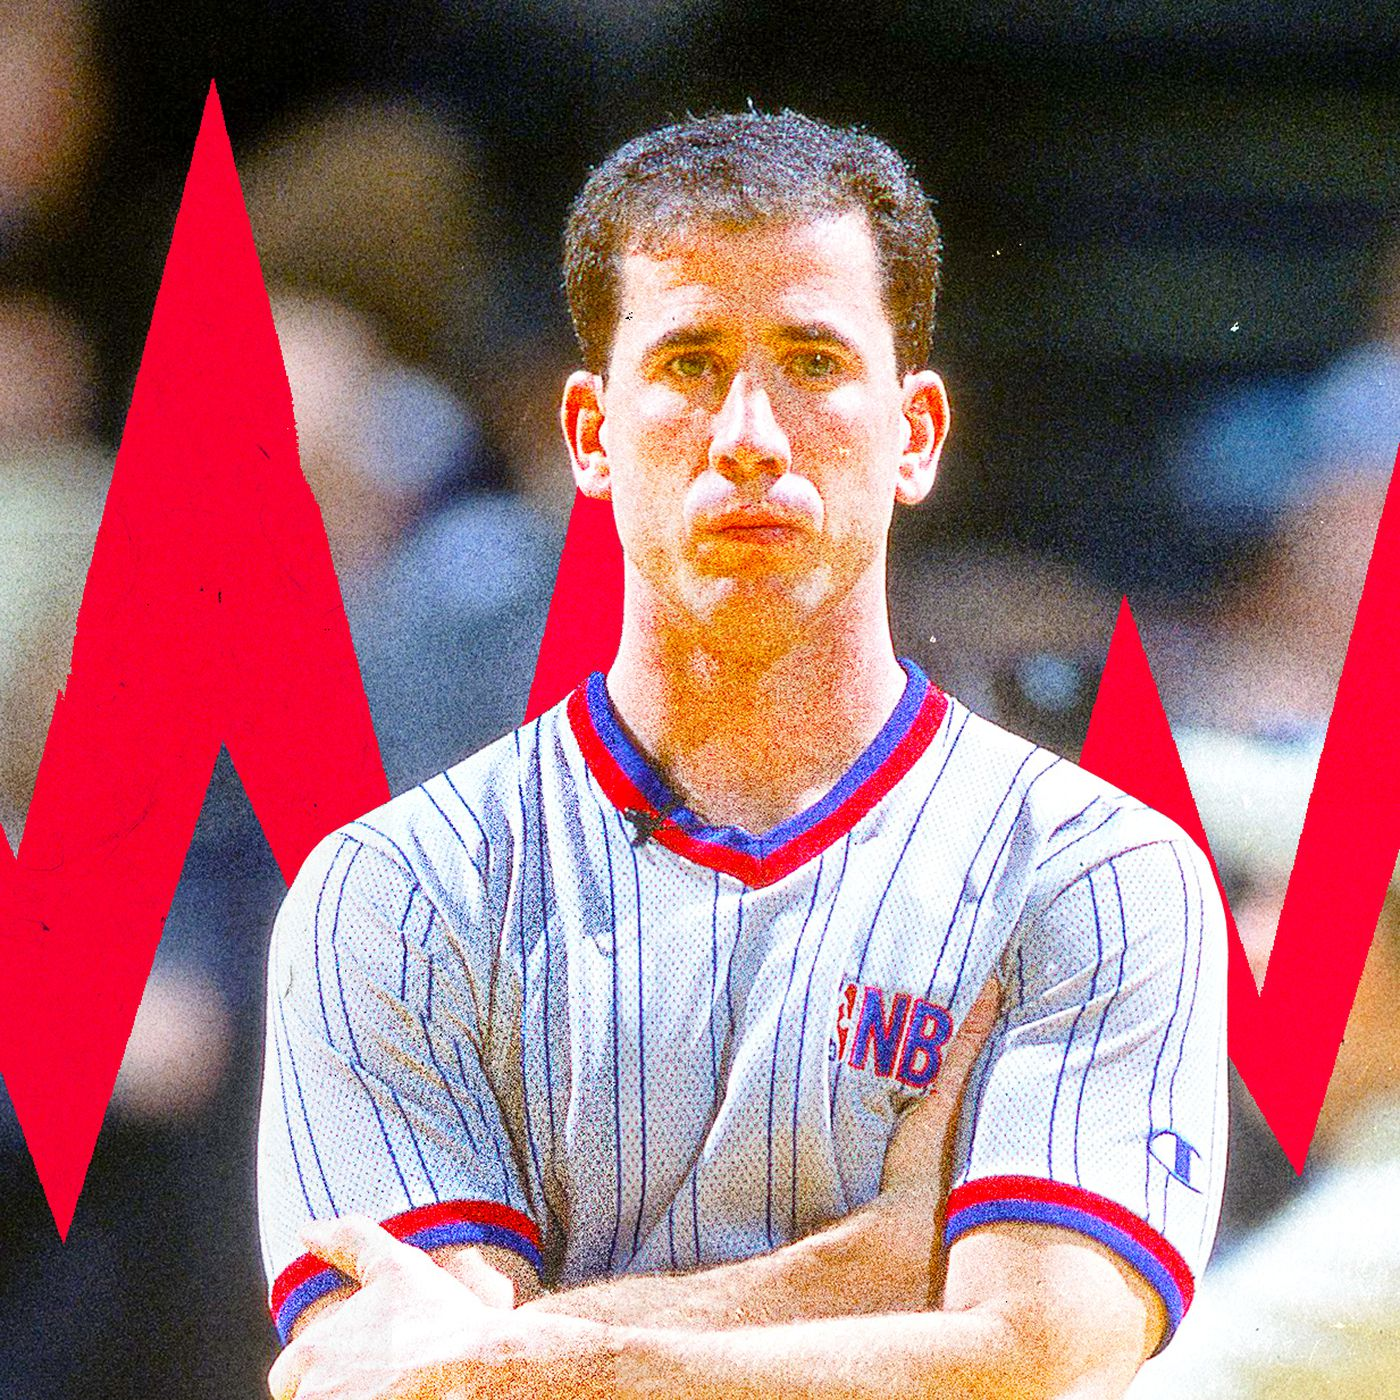 Nba referee scandal betting tips cheating live betting